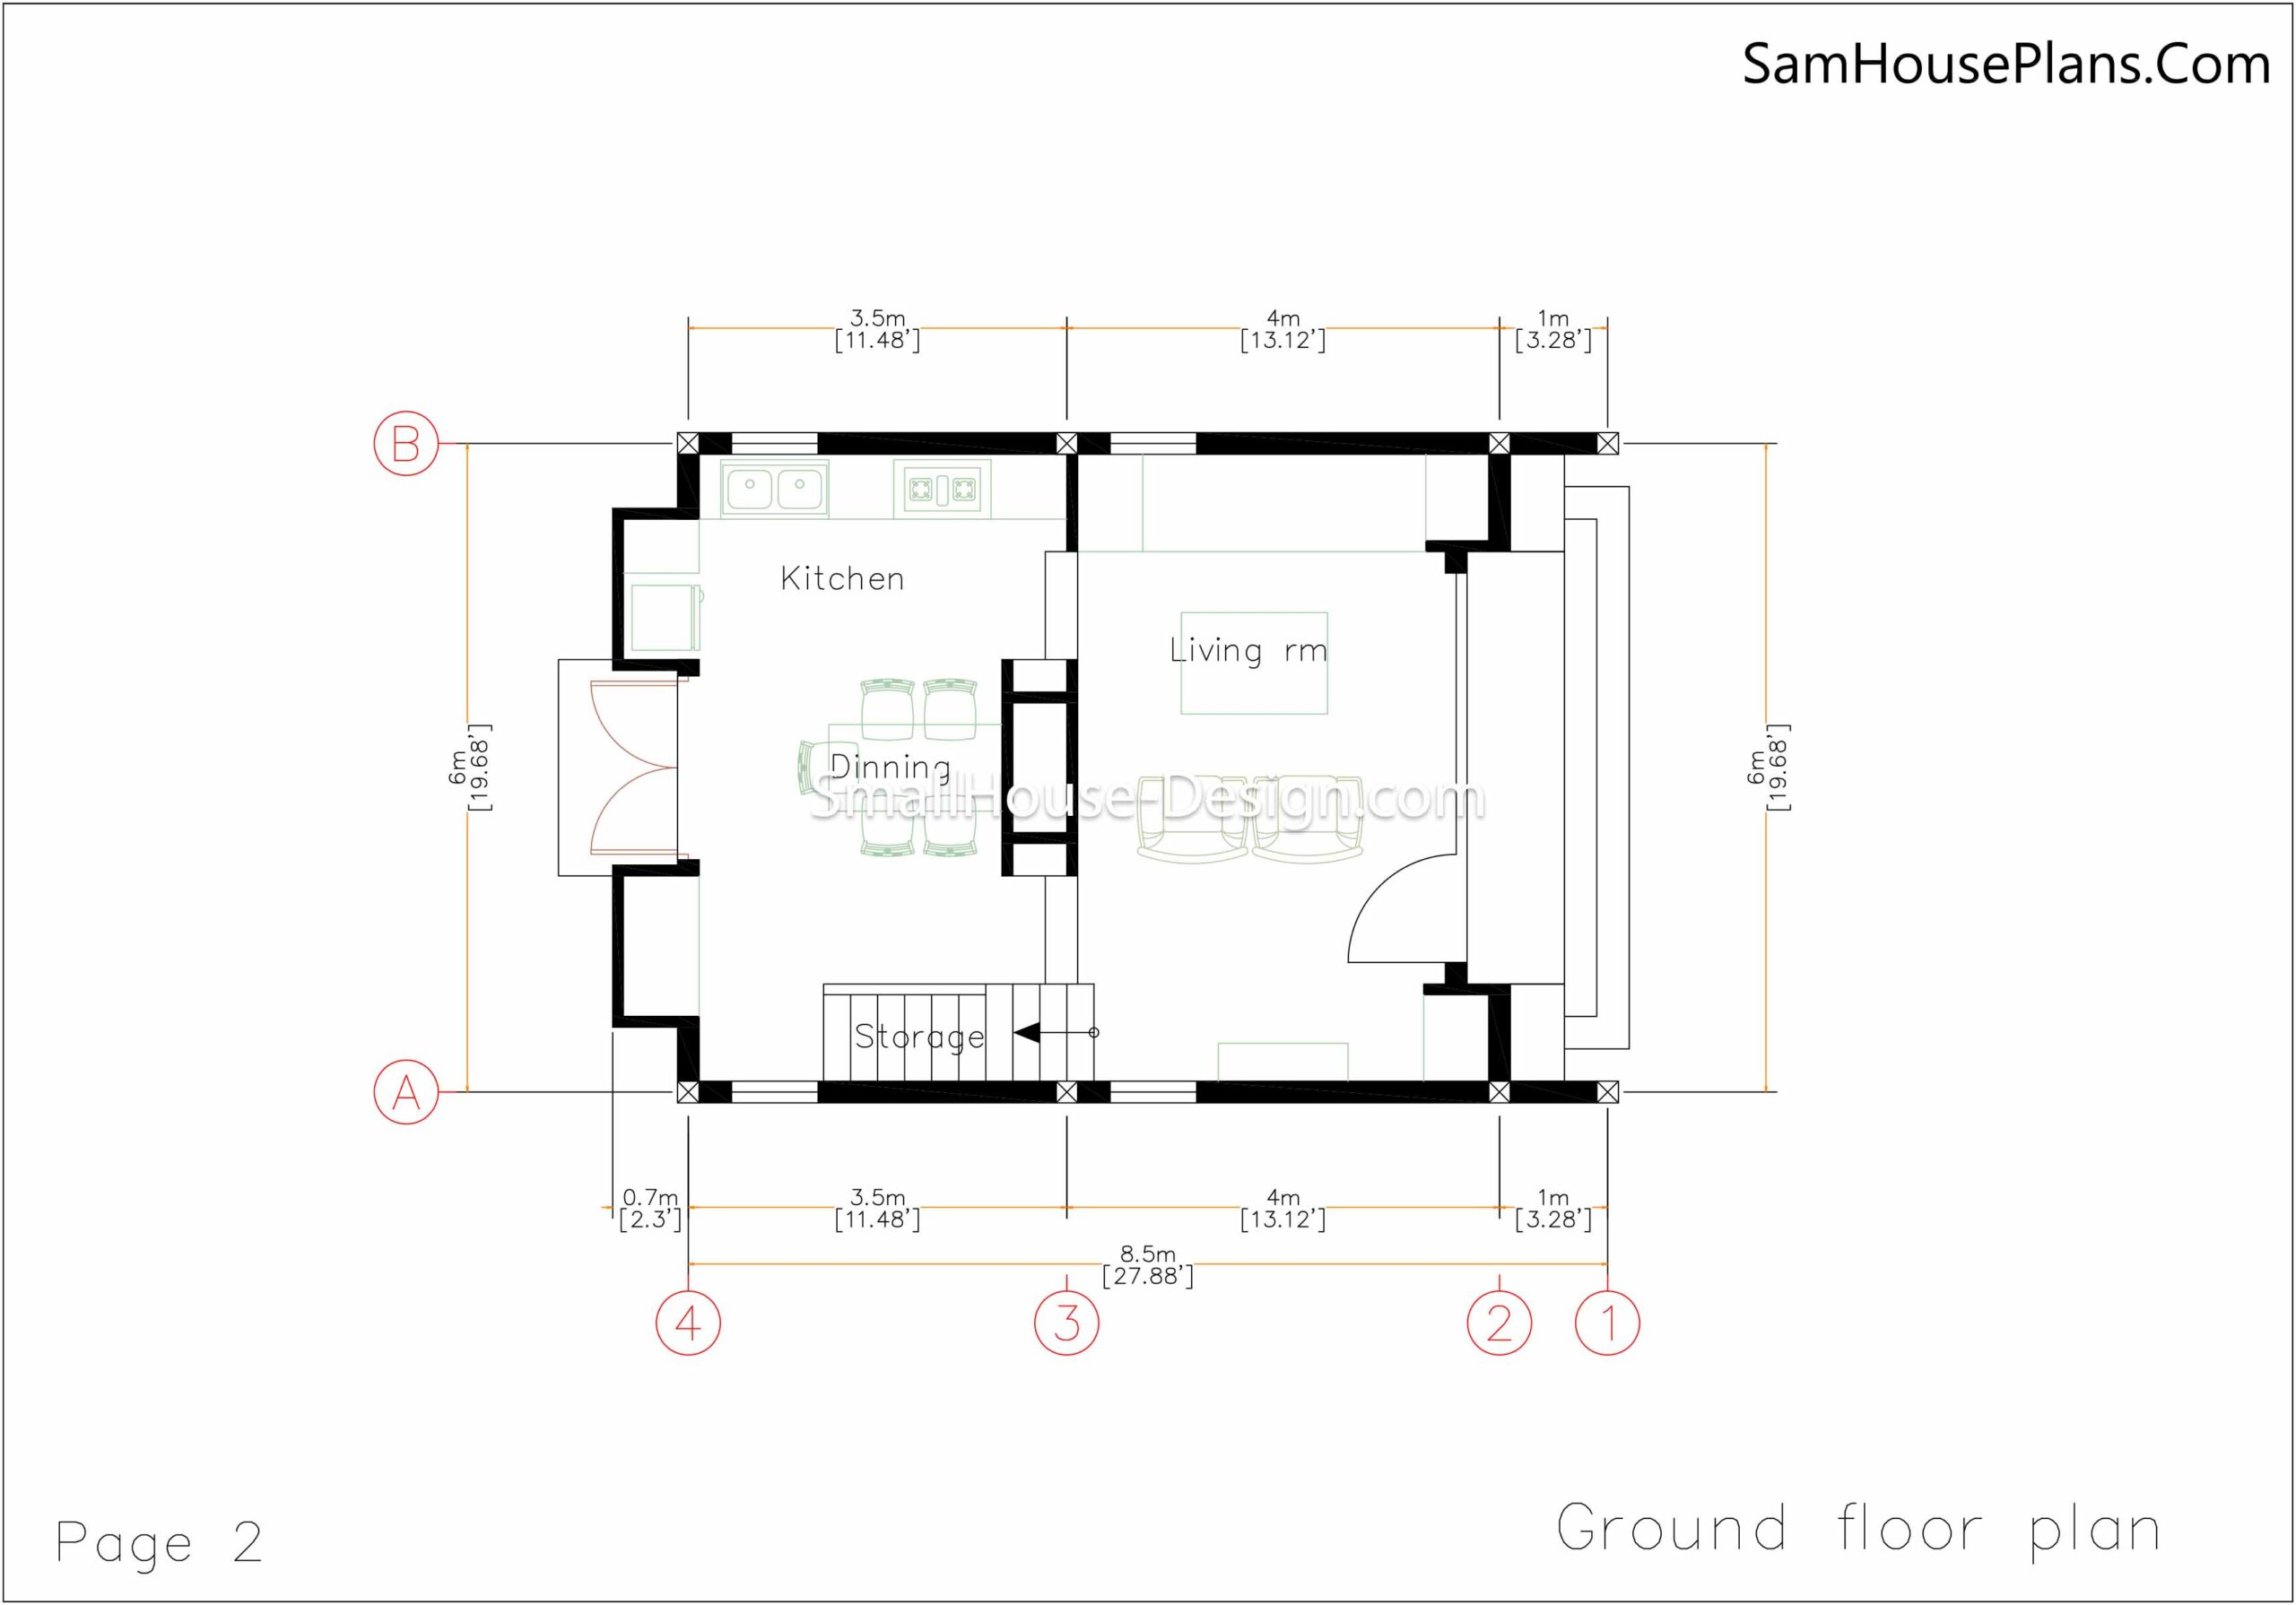 Small House Plan 6x8.5 Ground floor plan